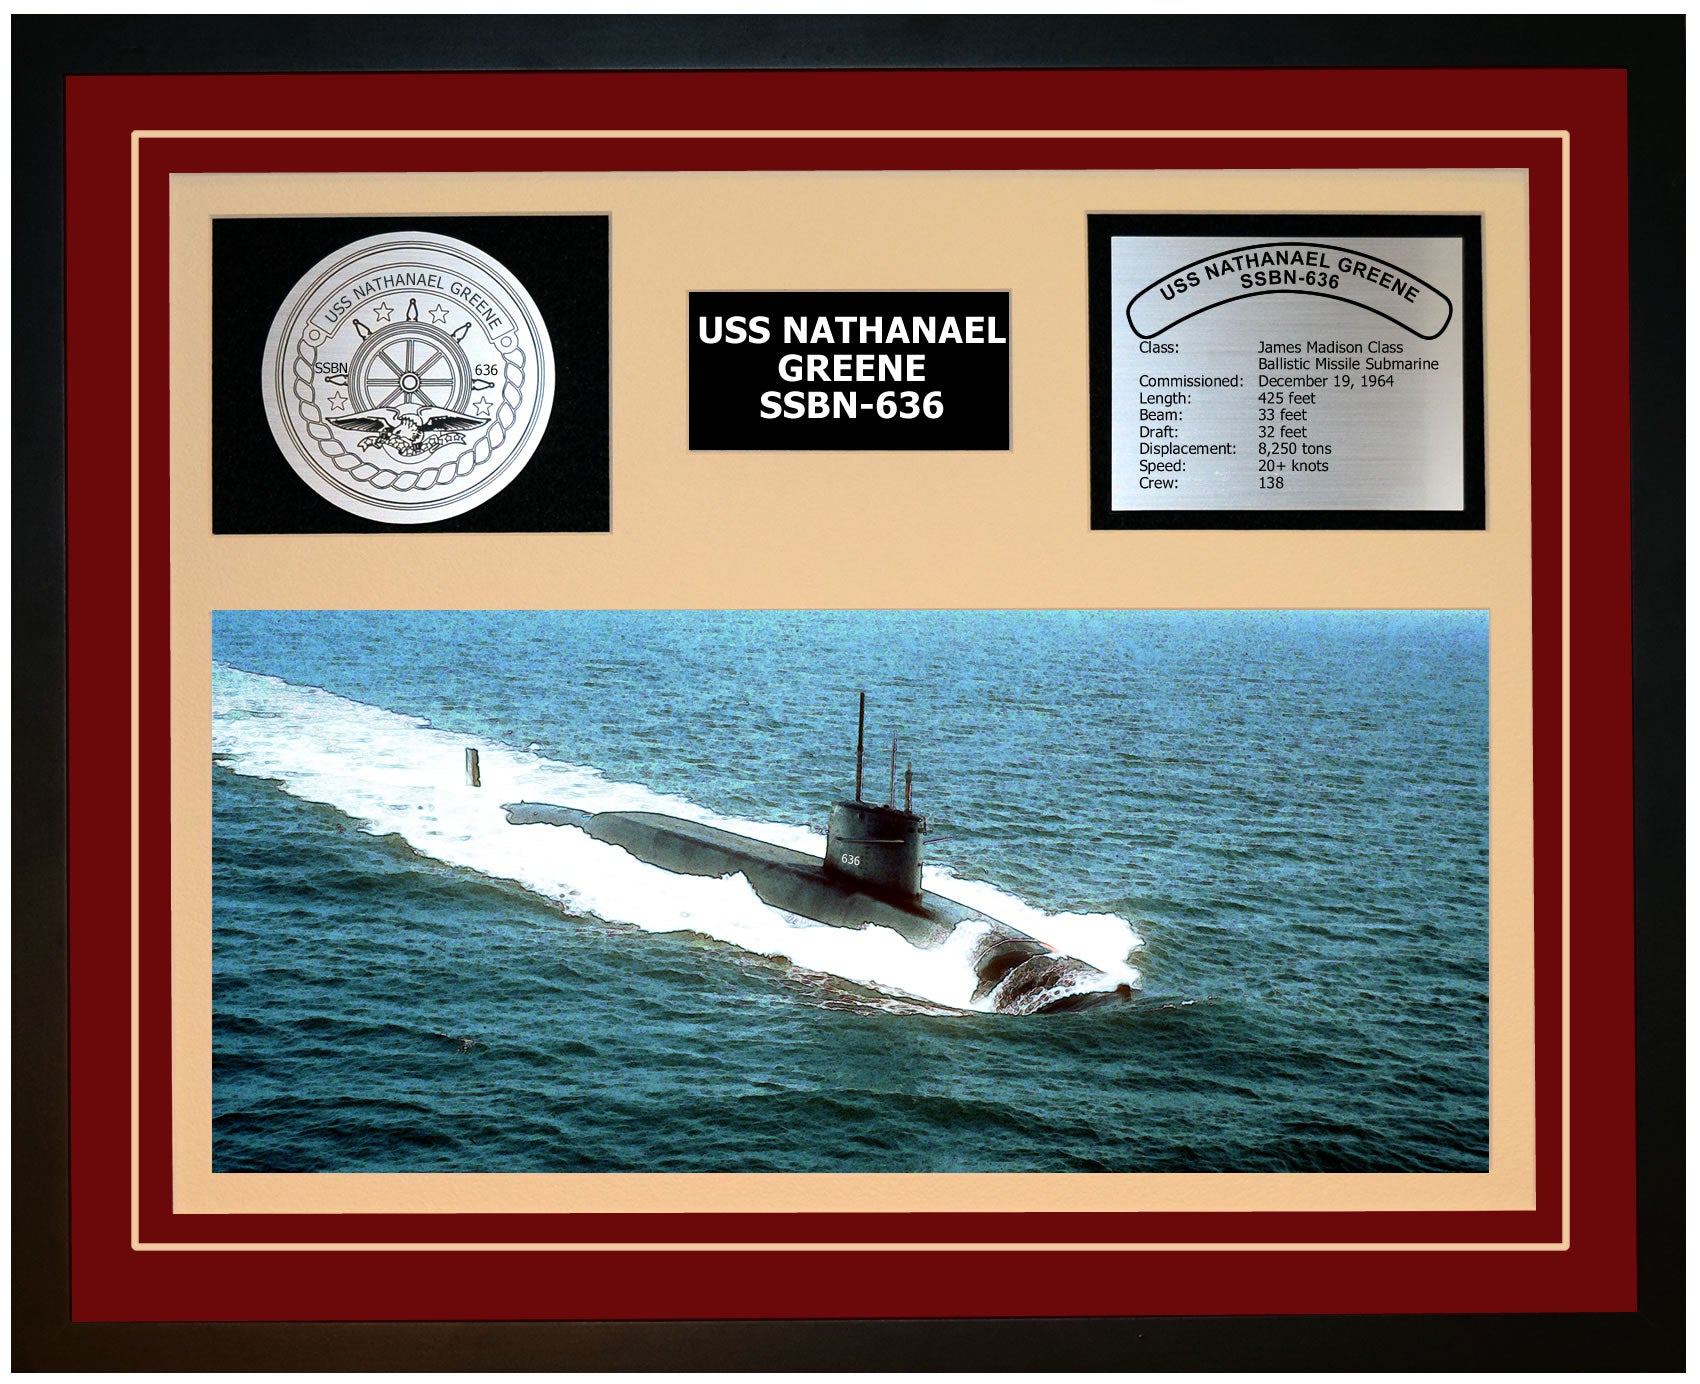 USS NATHANAEL GREENE SSBN-636 Framed Navy Ship Display Burgundy